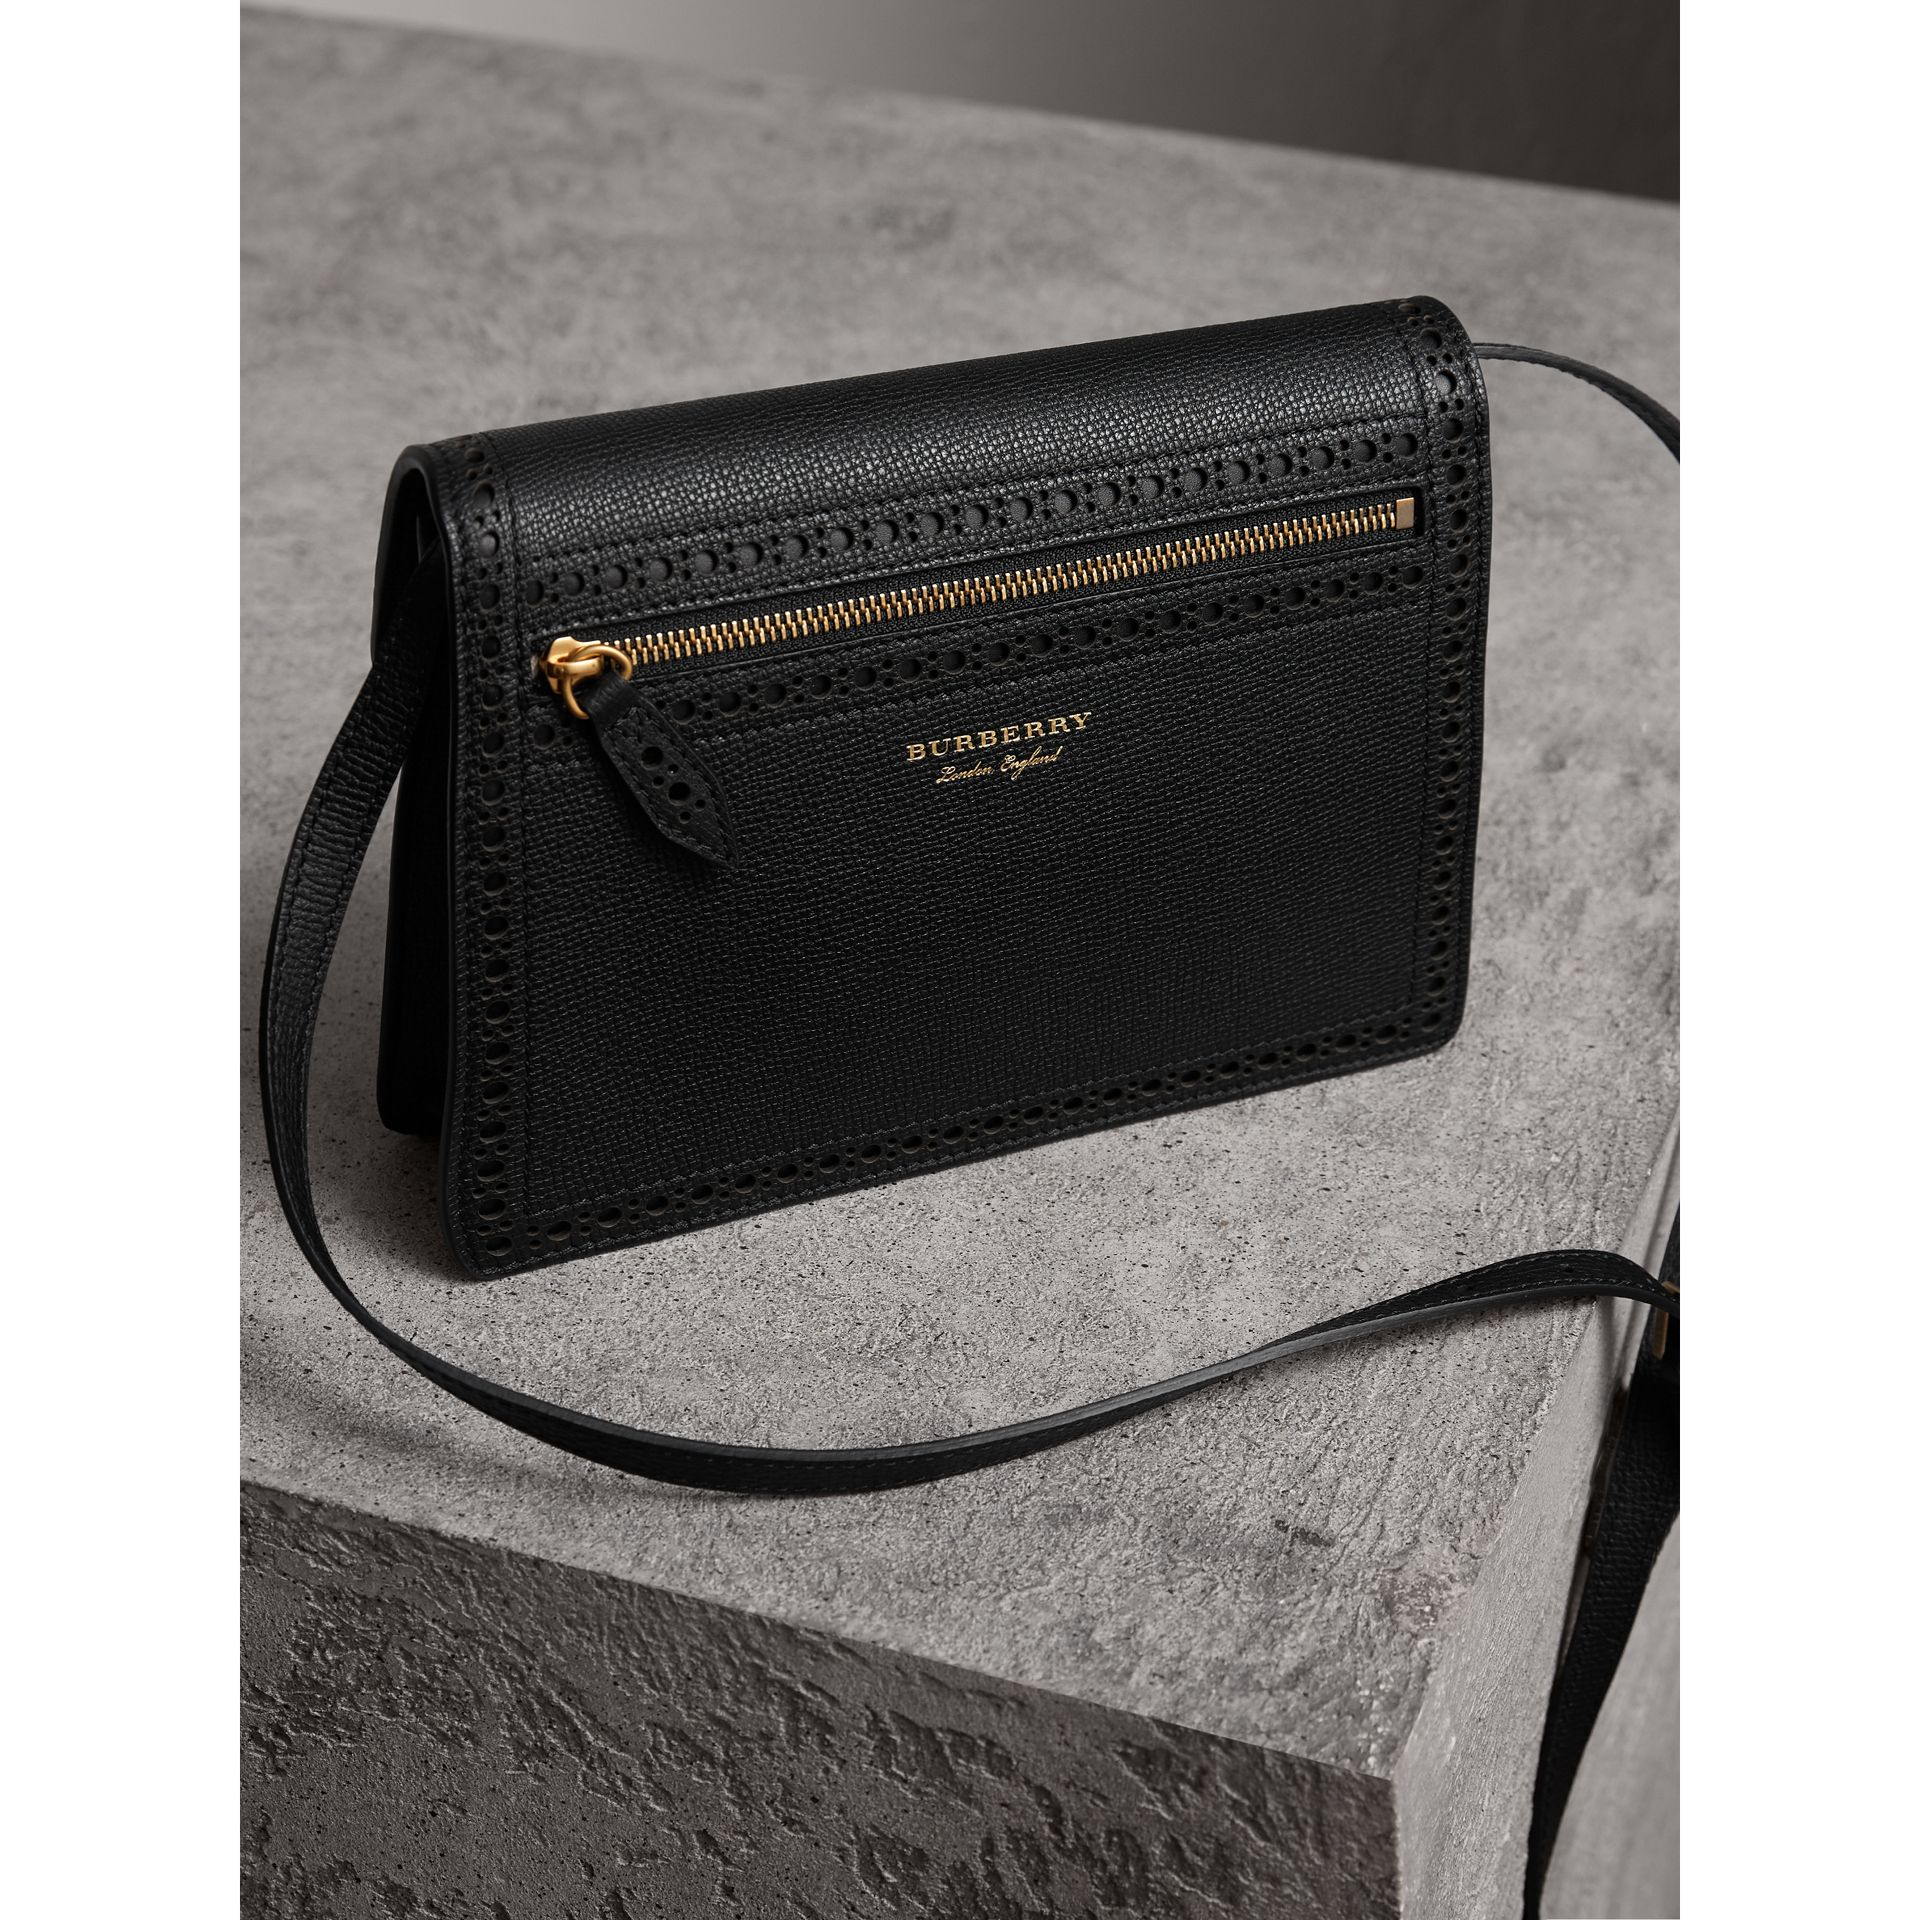 Brogue and Fringe Detail Leather Crossbody Bag in Black - Women | Burberry - gallery image 3